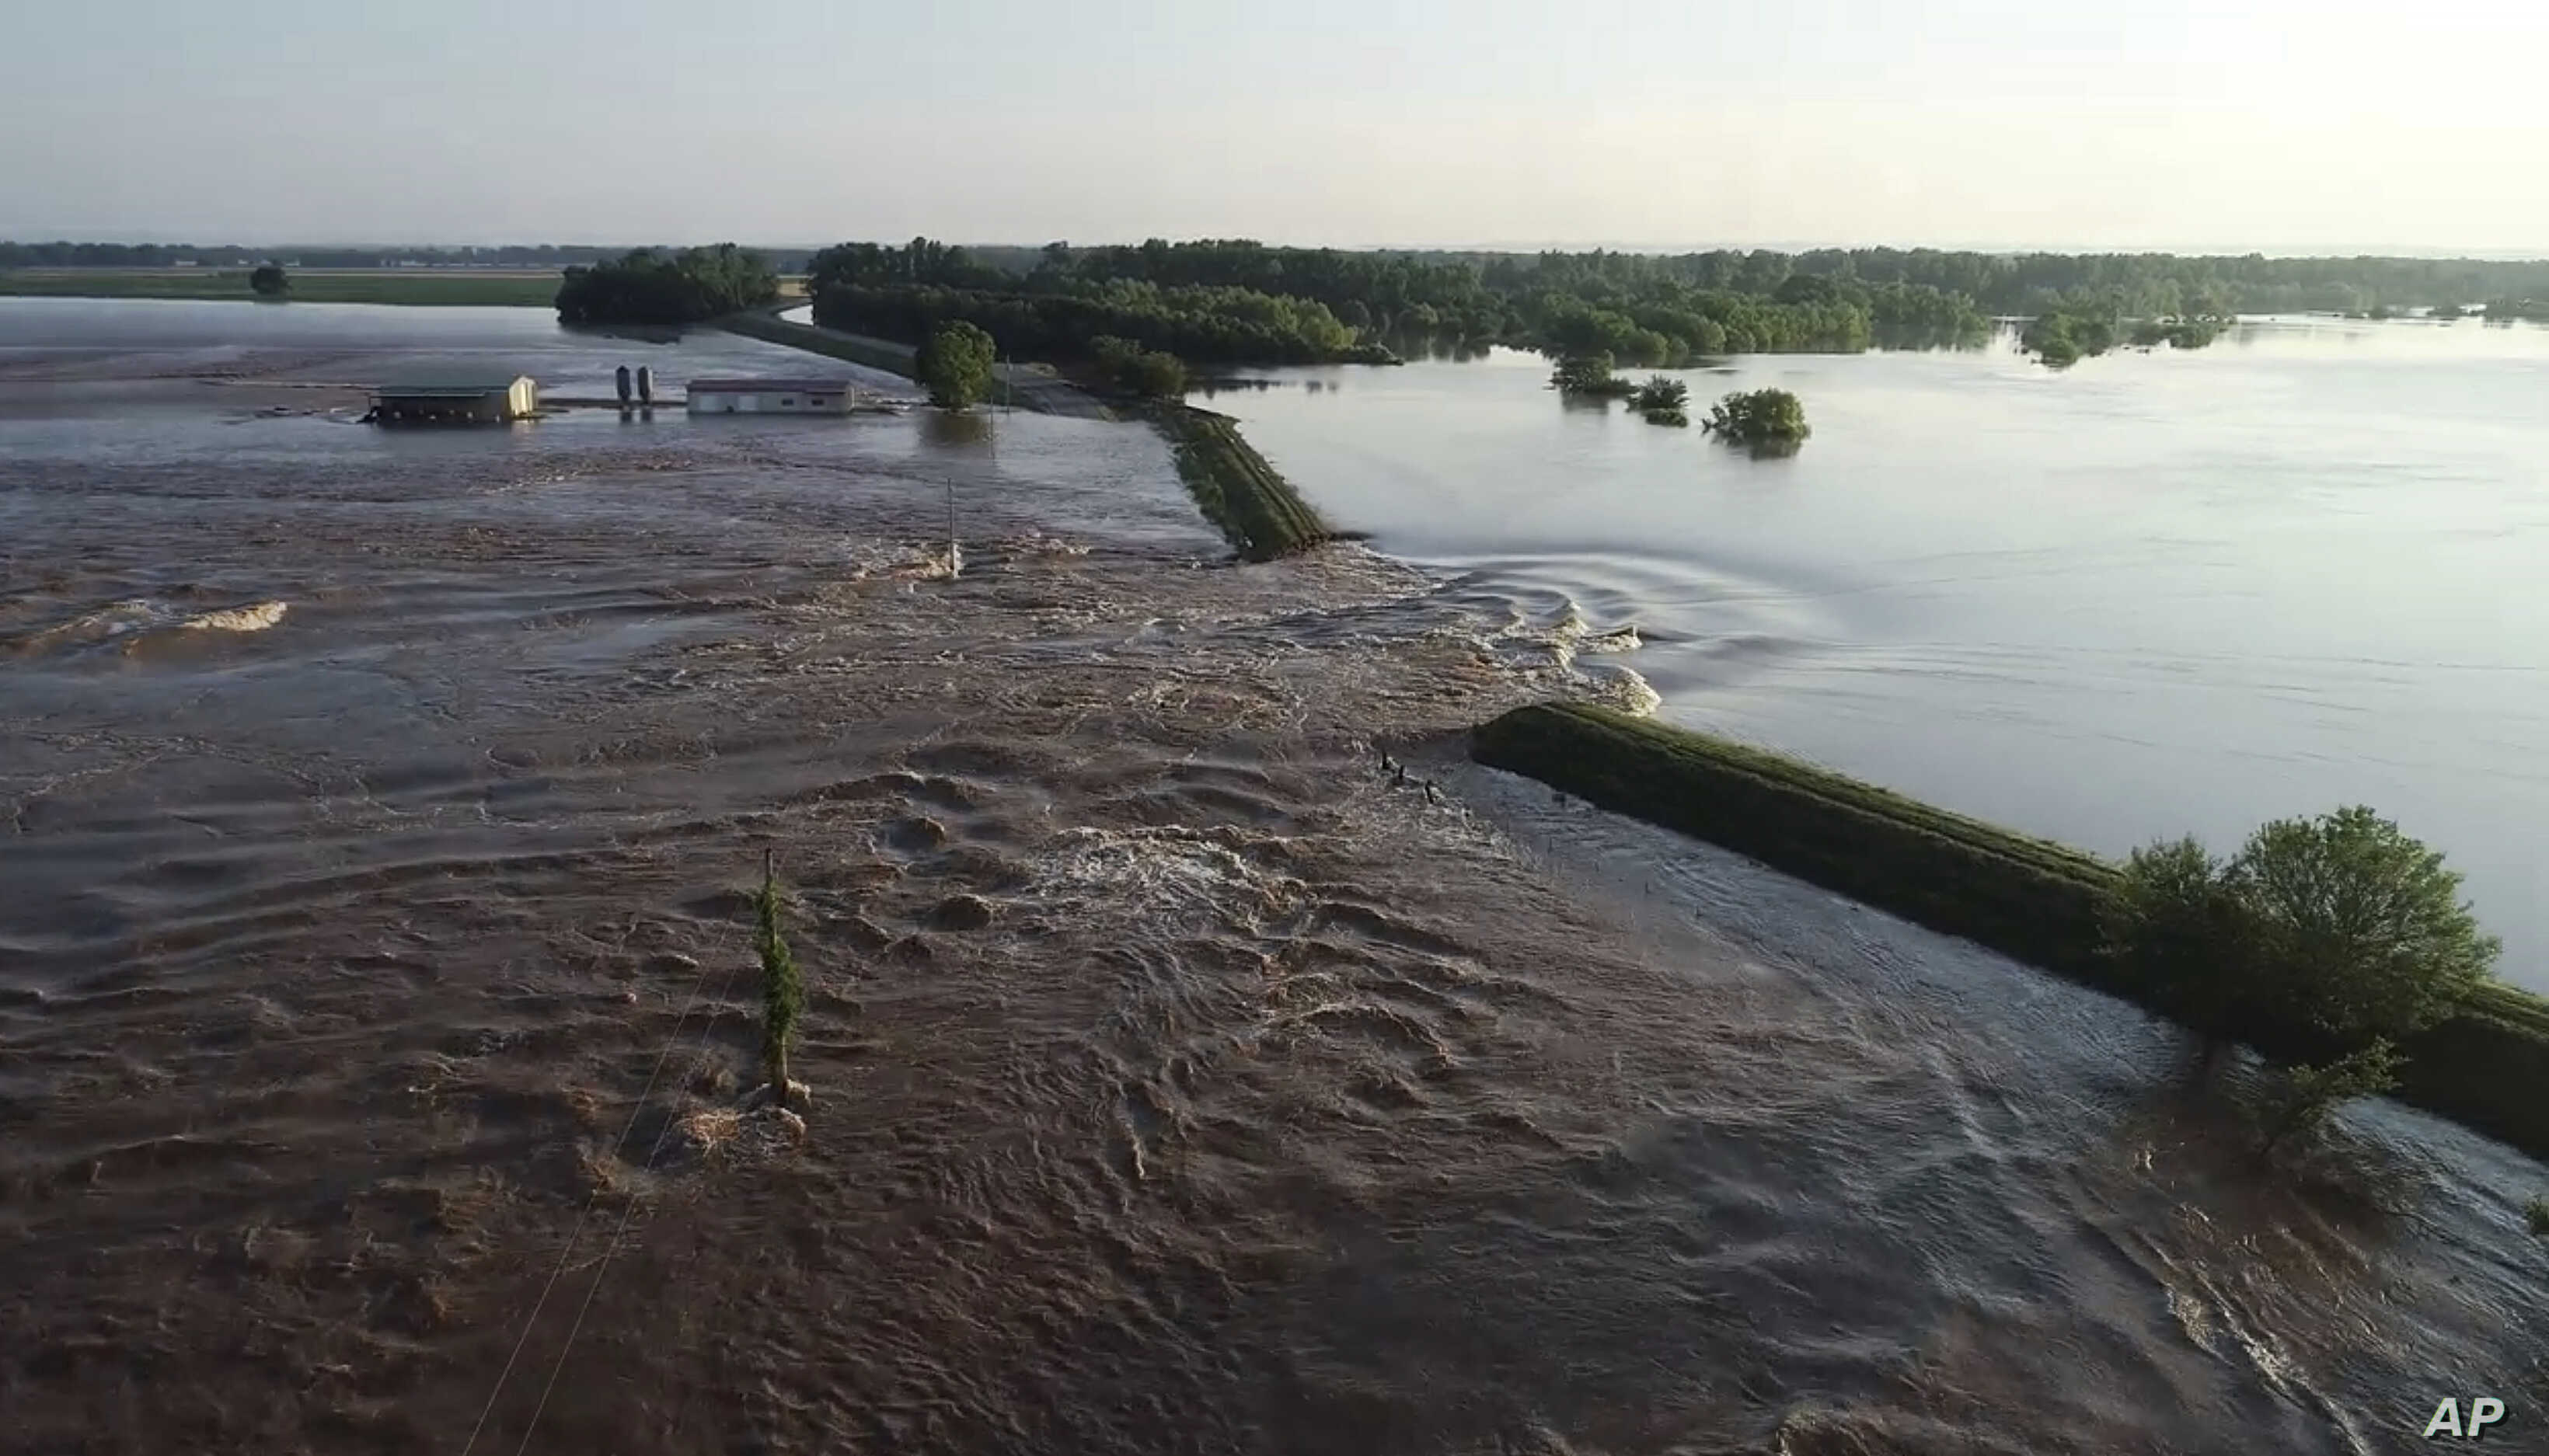 In US Midwest, Rivers Breach Levees, Flood Towns | Voice of